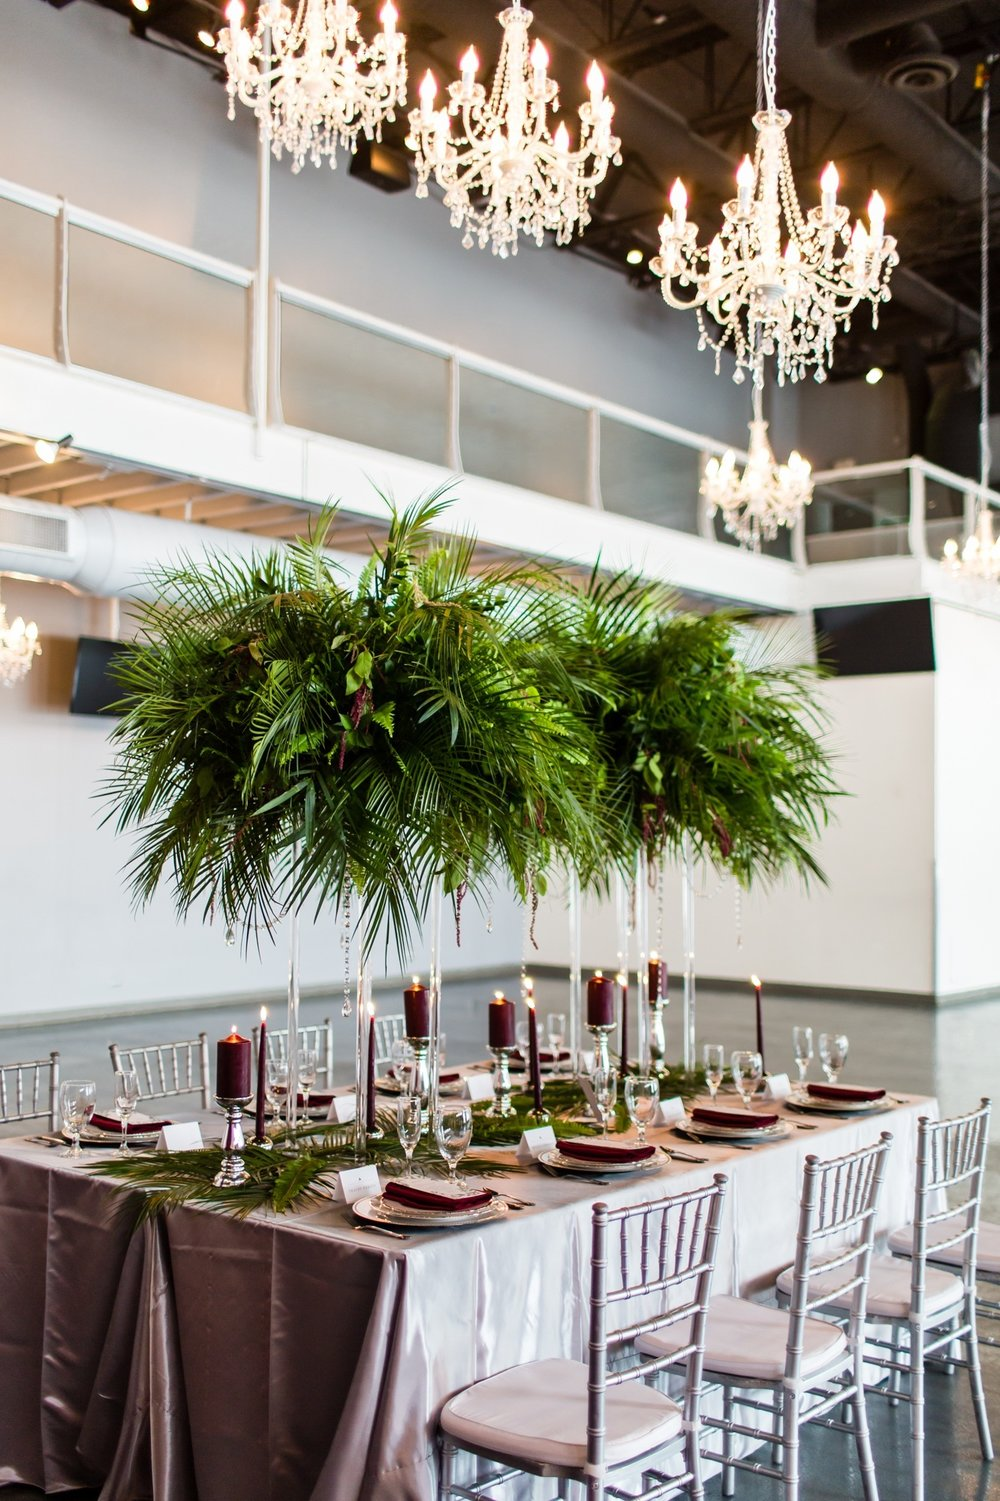 head table under three chandeliers with rented linens and napkins